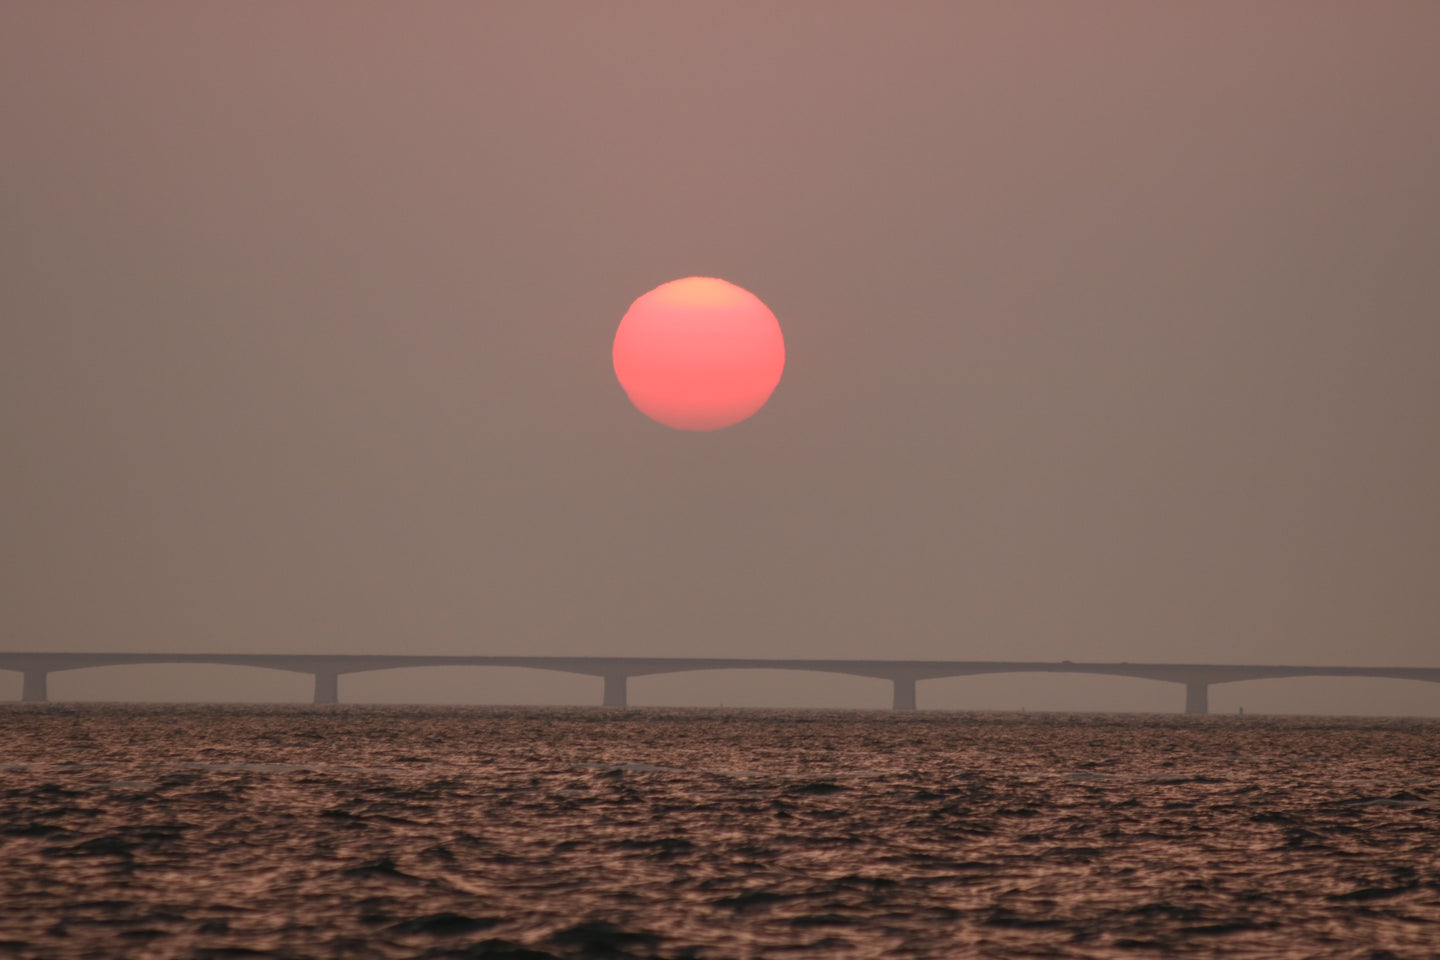 Sunset over bridge near body of water